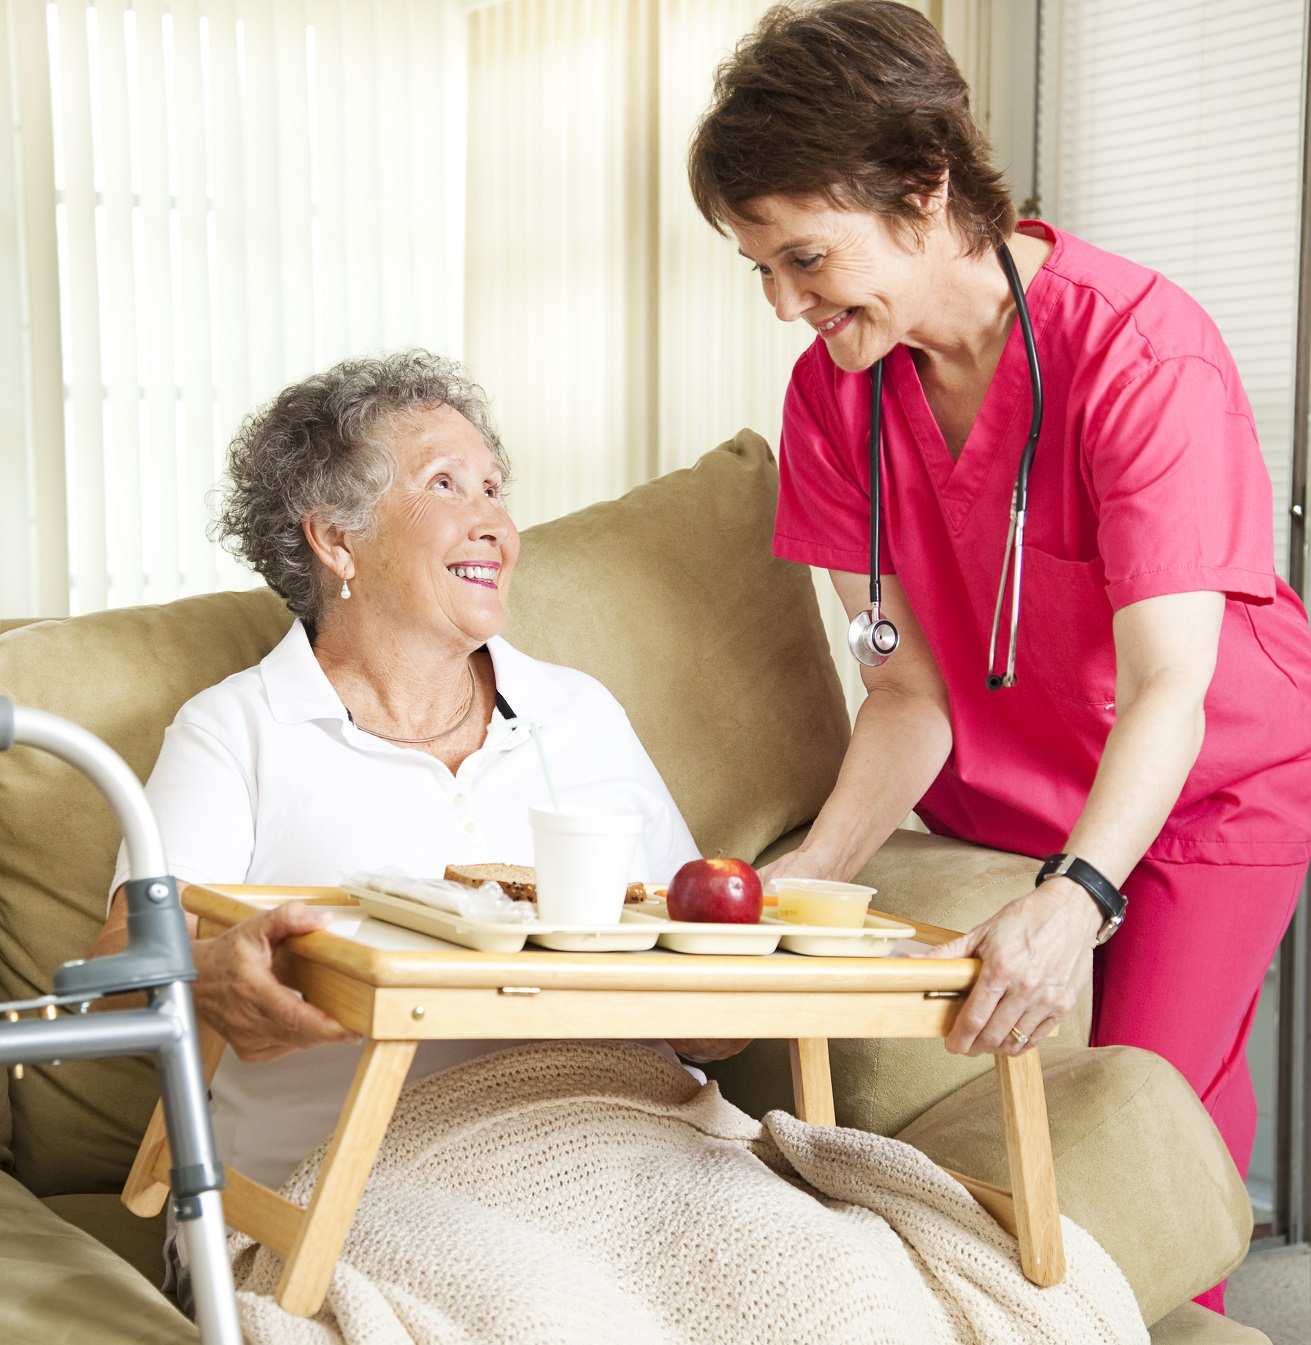 Hospice programme is improving CQC ratings for care homes